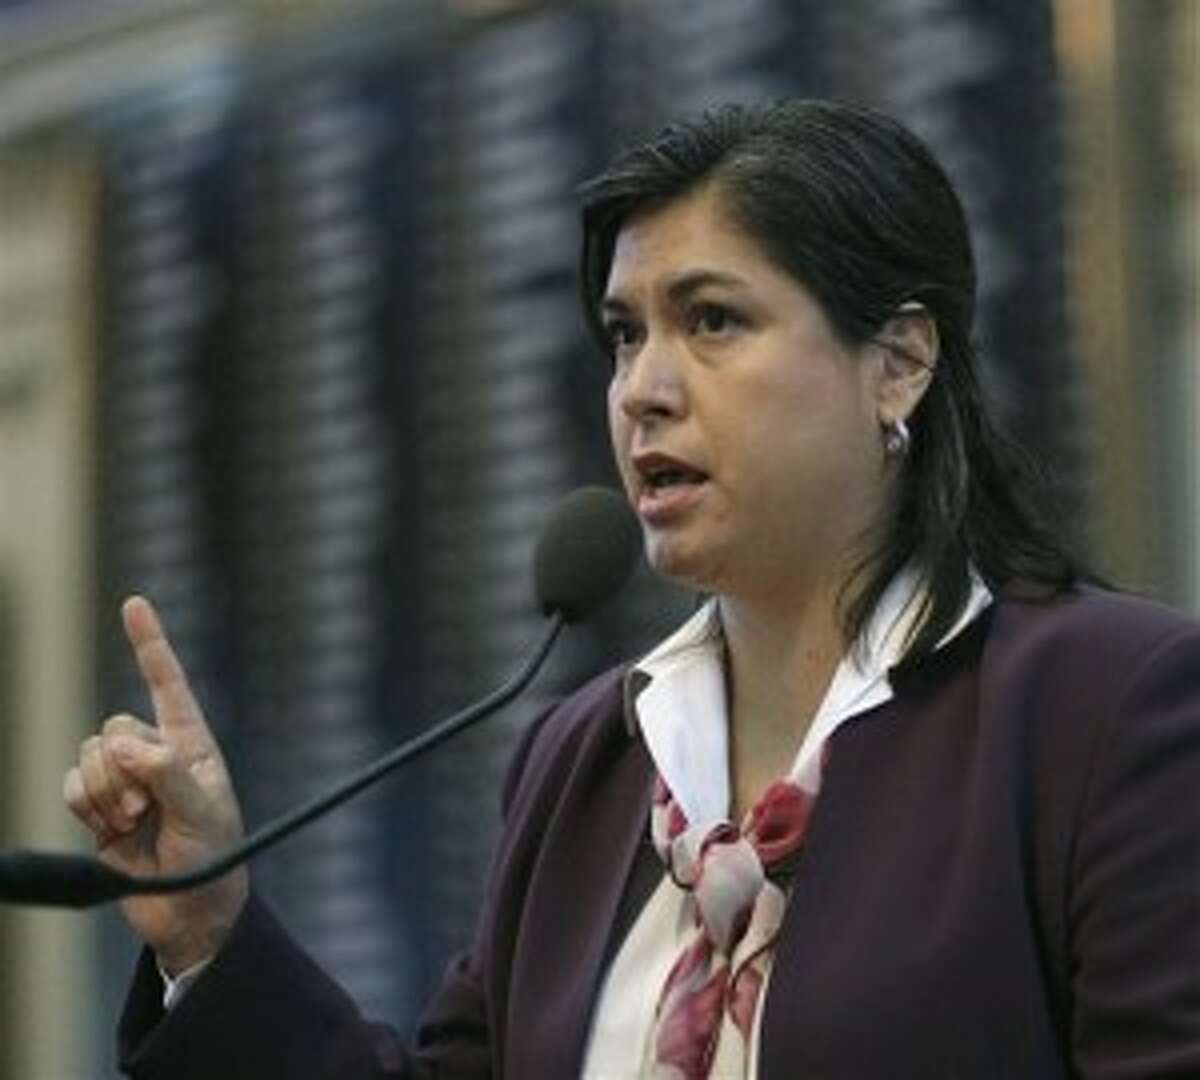 State Rep. Jessica Farrar, D-Houston, filed a bill Friday that would penalize men for